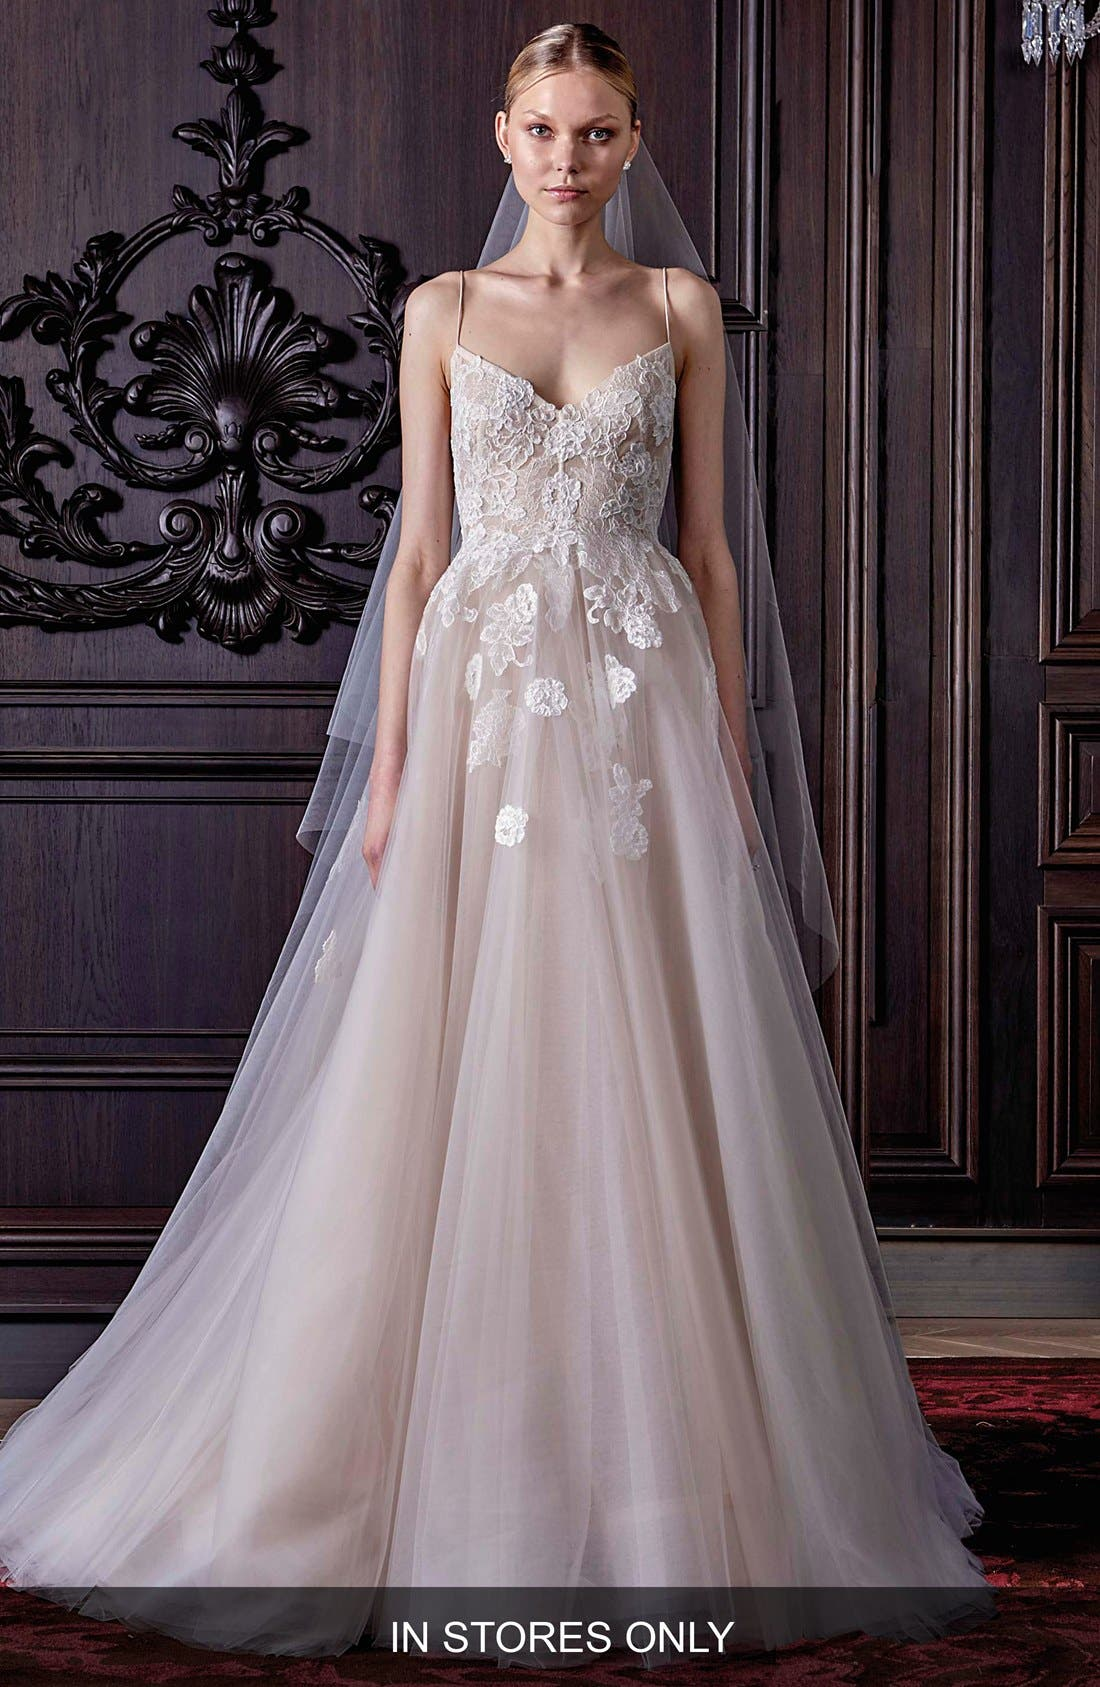 Severine Chantilly Lace & Tulle Gown,                             Main thumbnail 1, color,                             SILK WHITE/ NUDE